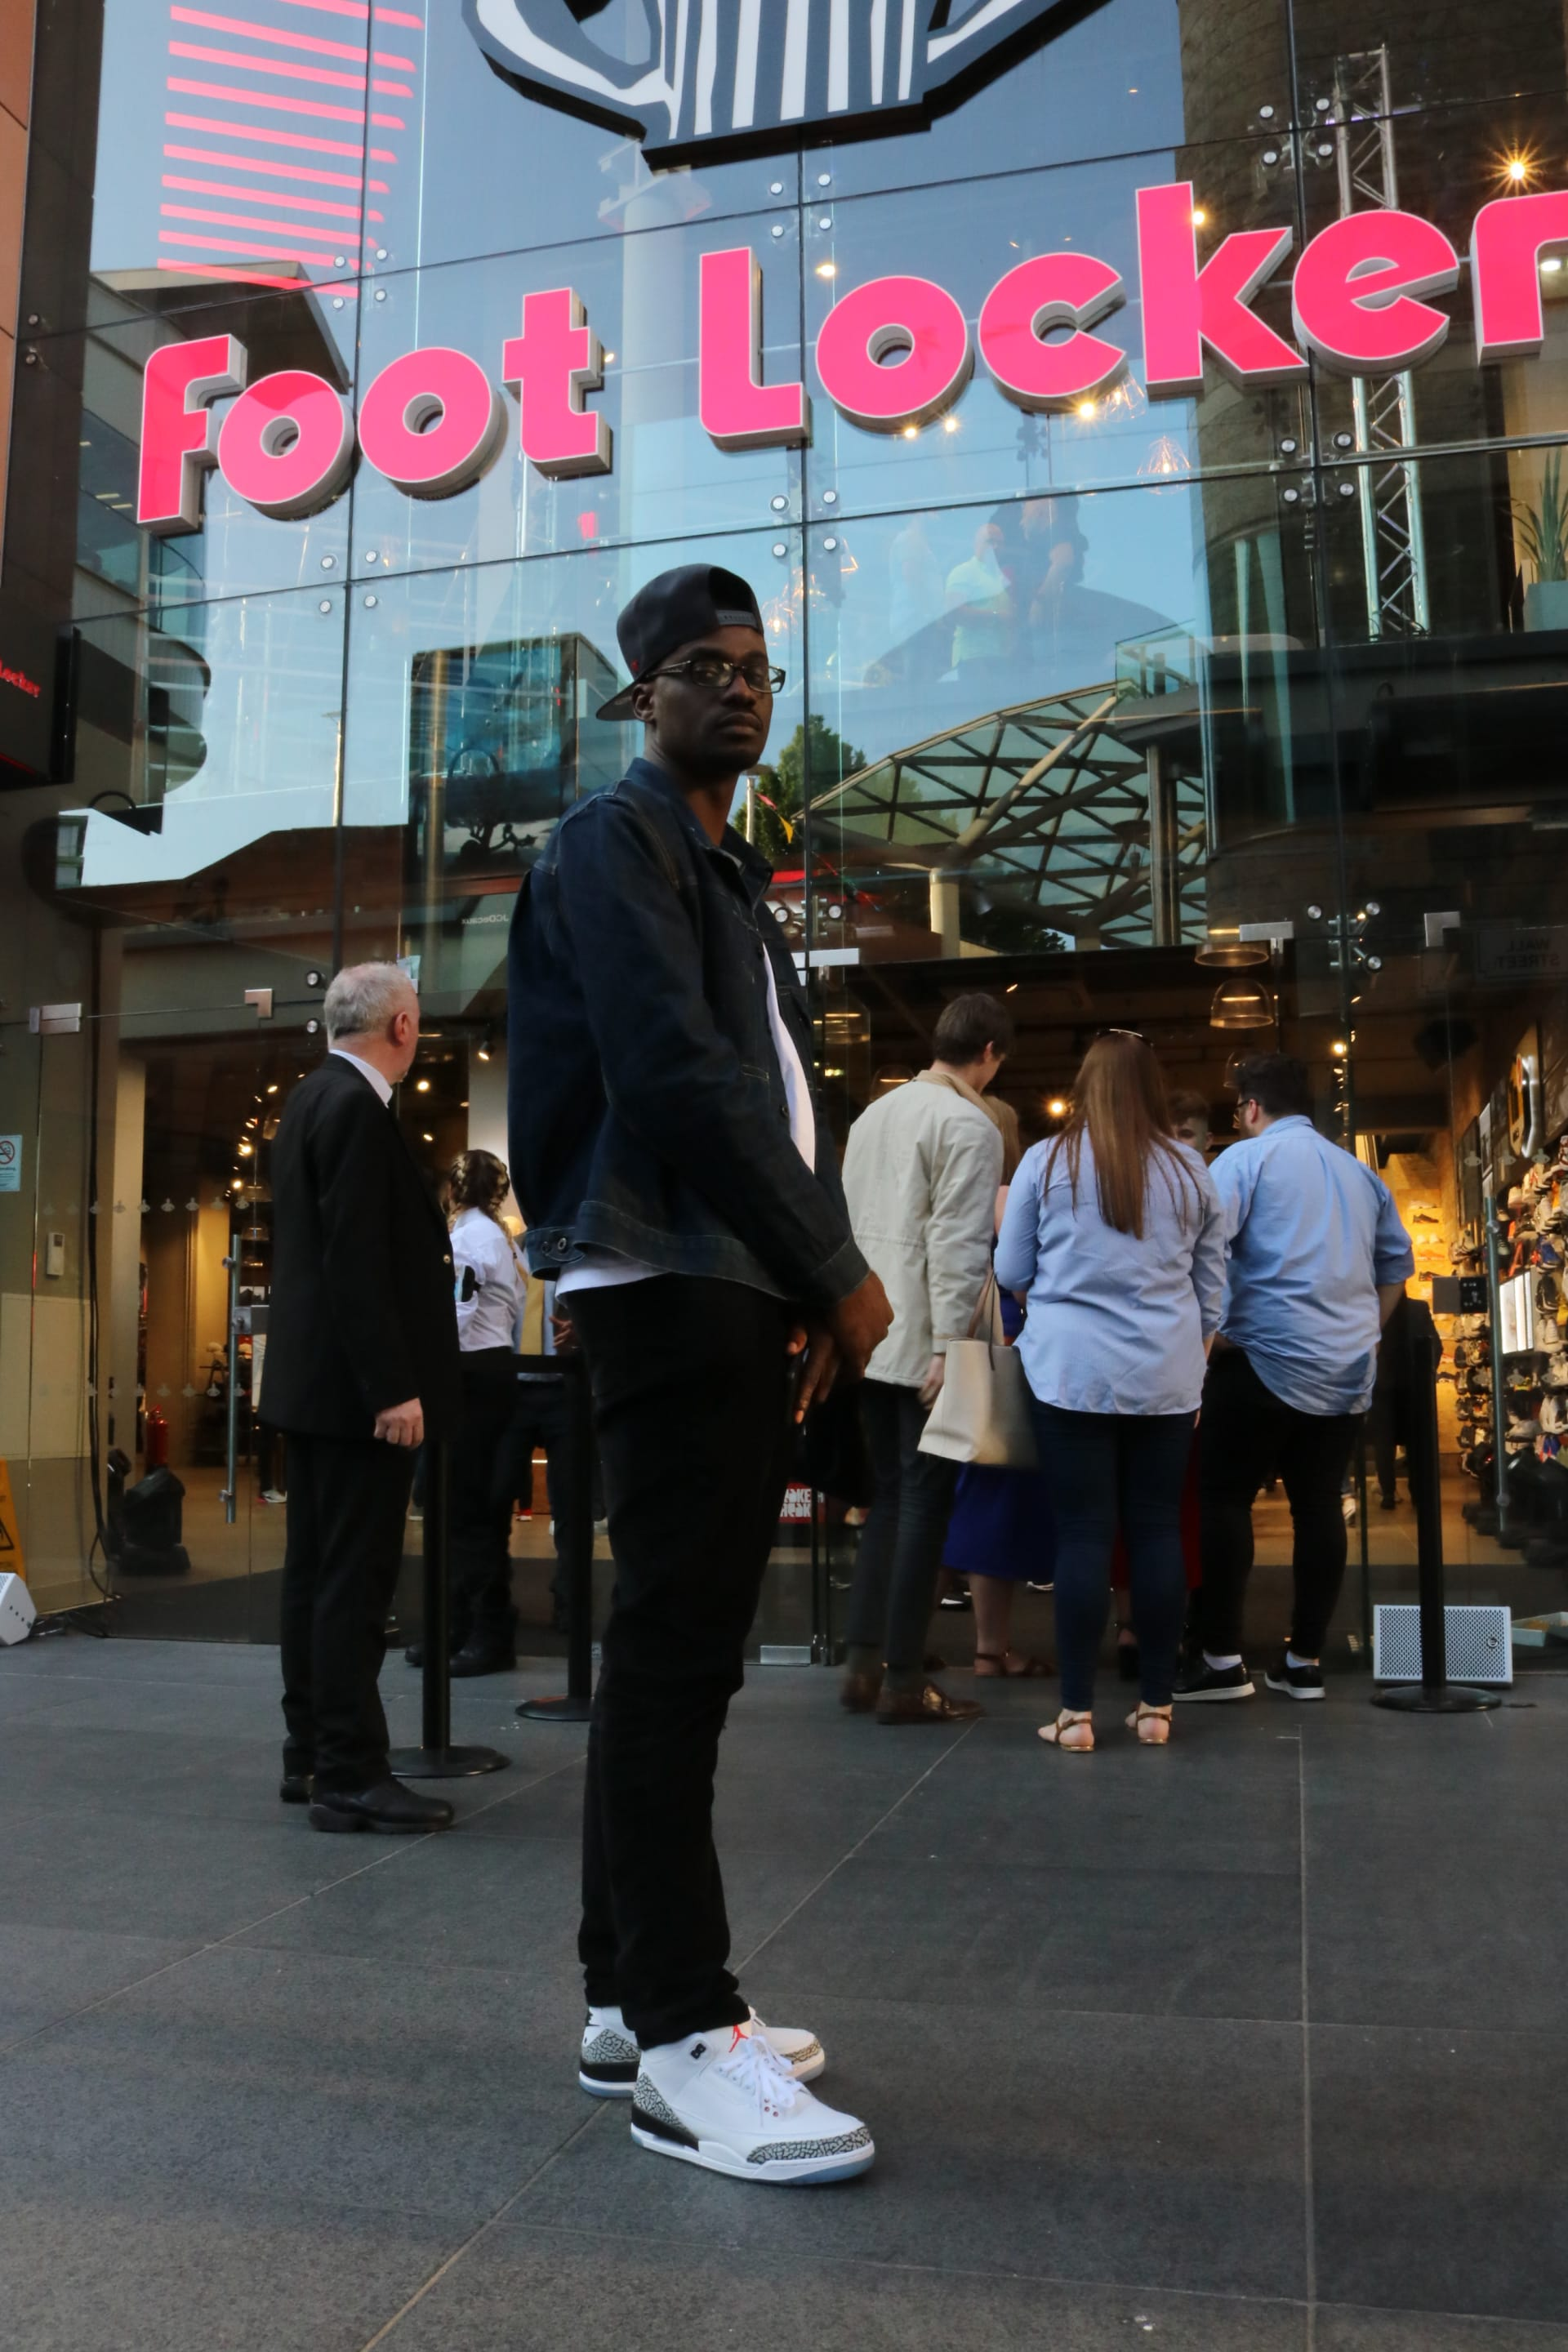 footlocker-liverpool-5